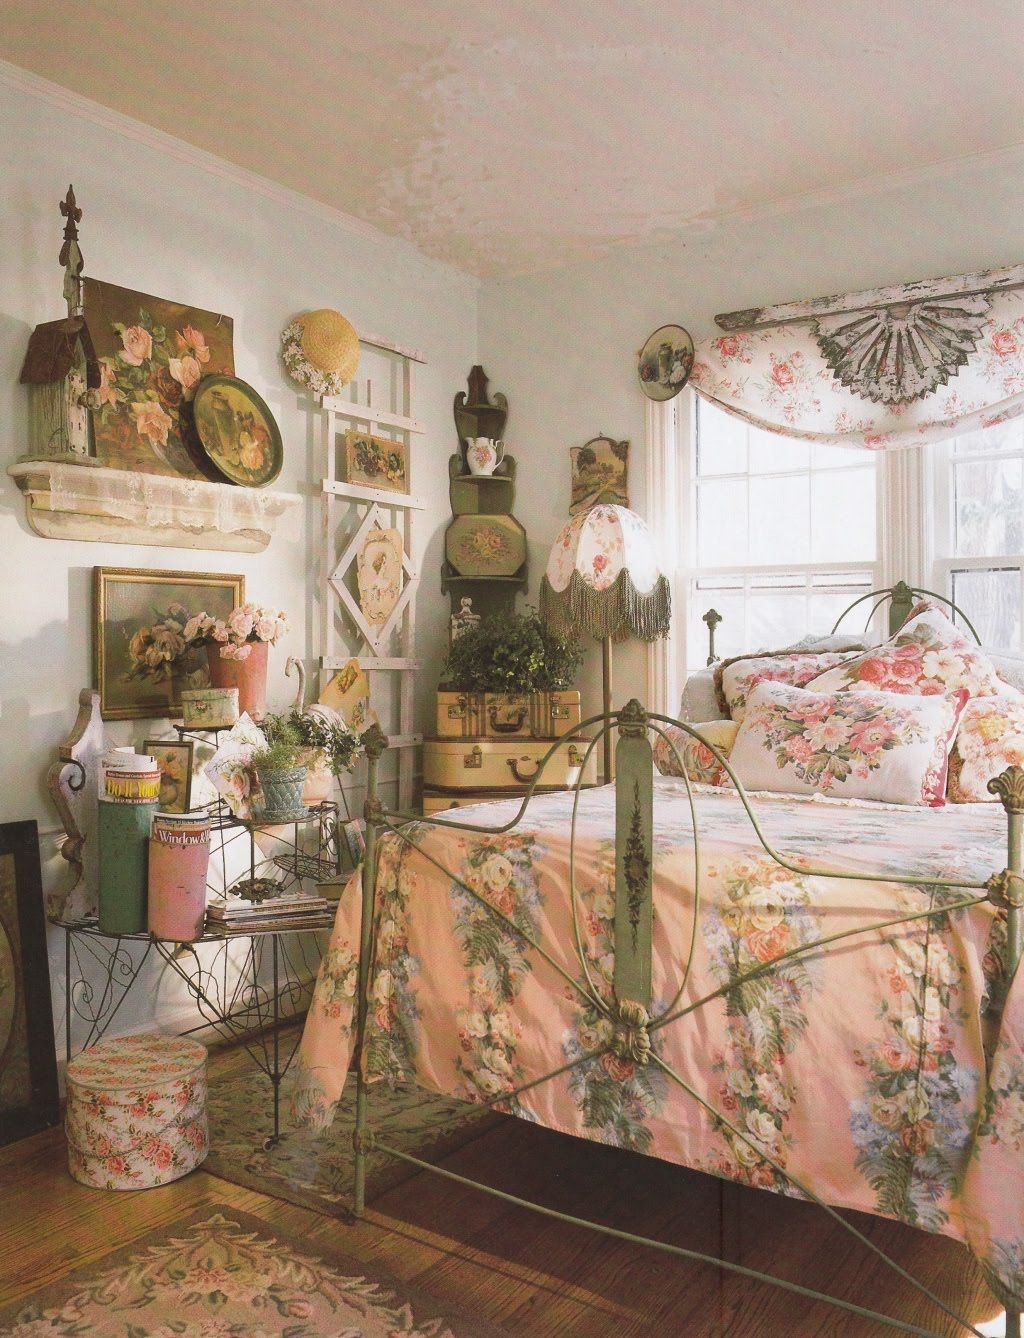 old style bedroom designs. Room Modern Interior Design with Vintage Furniture and Decor